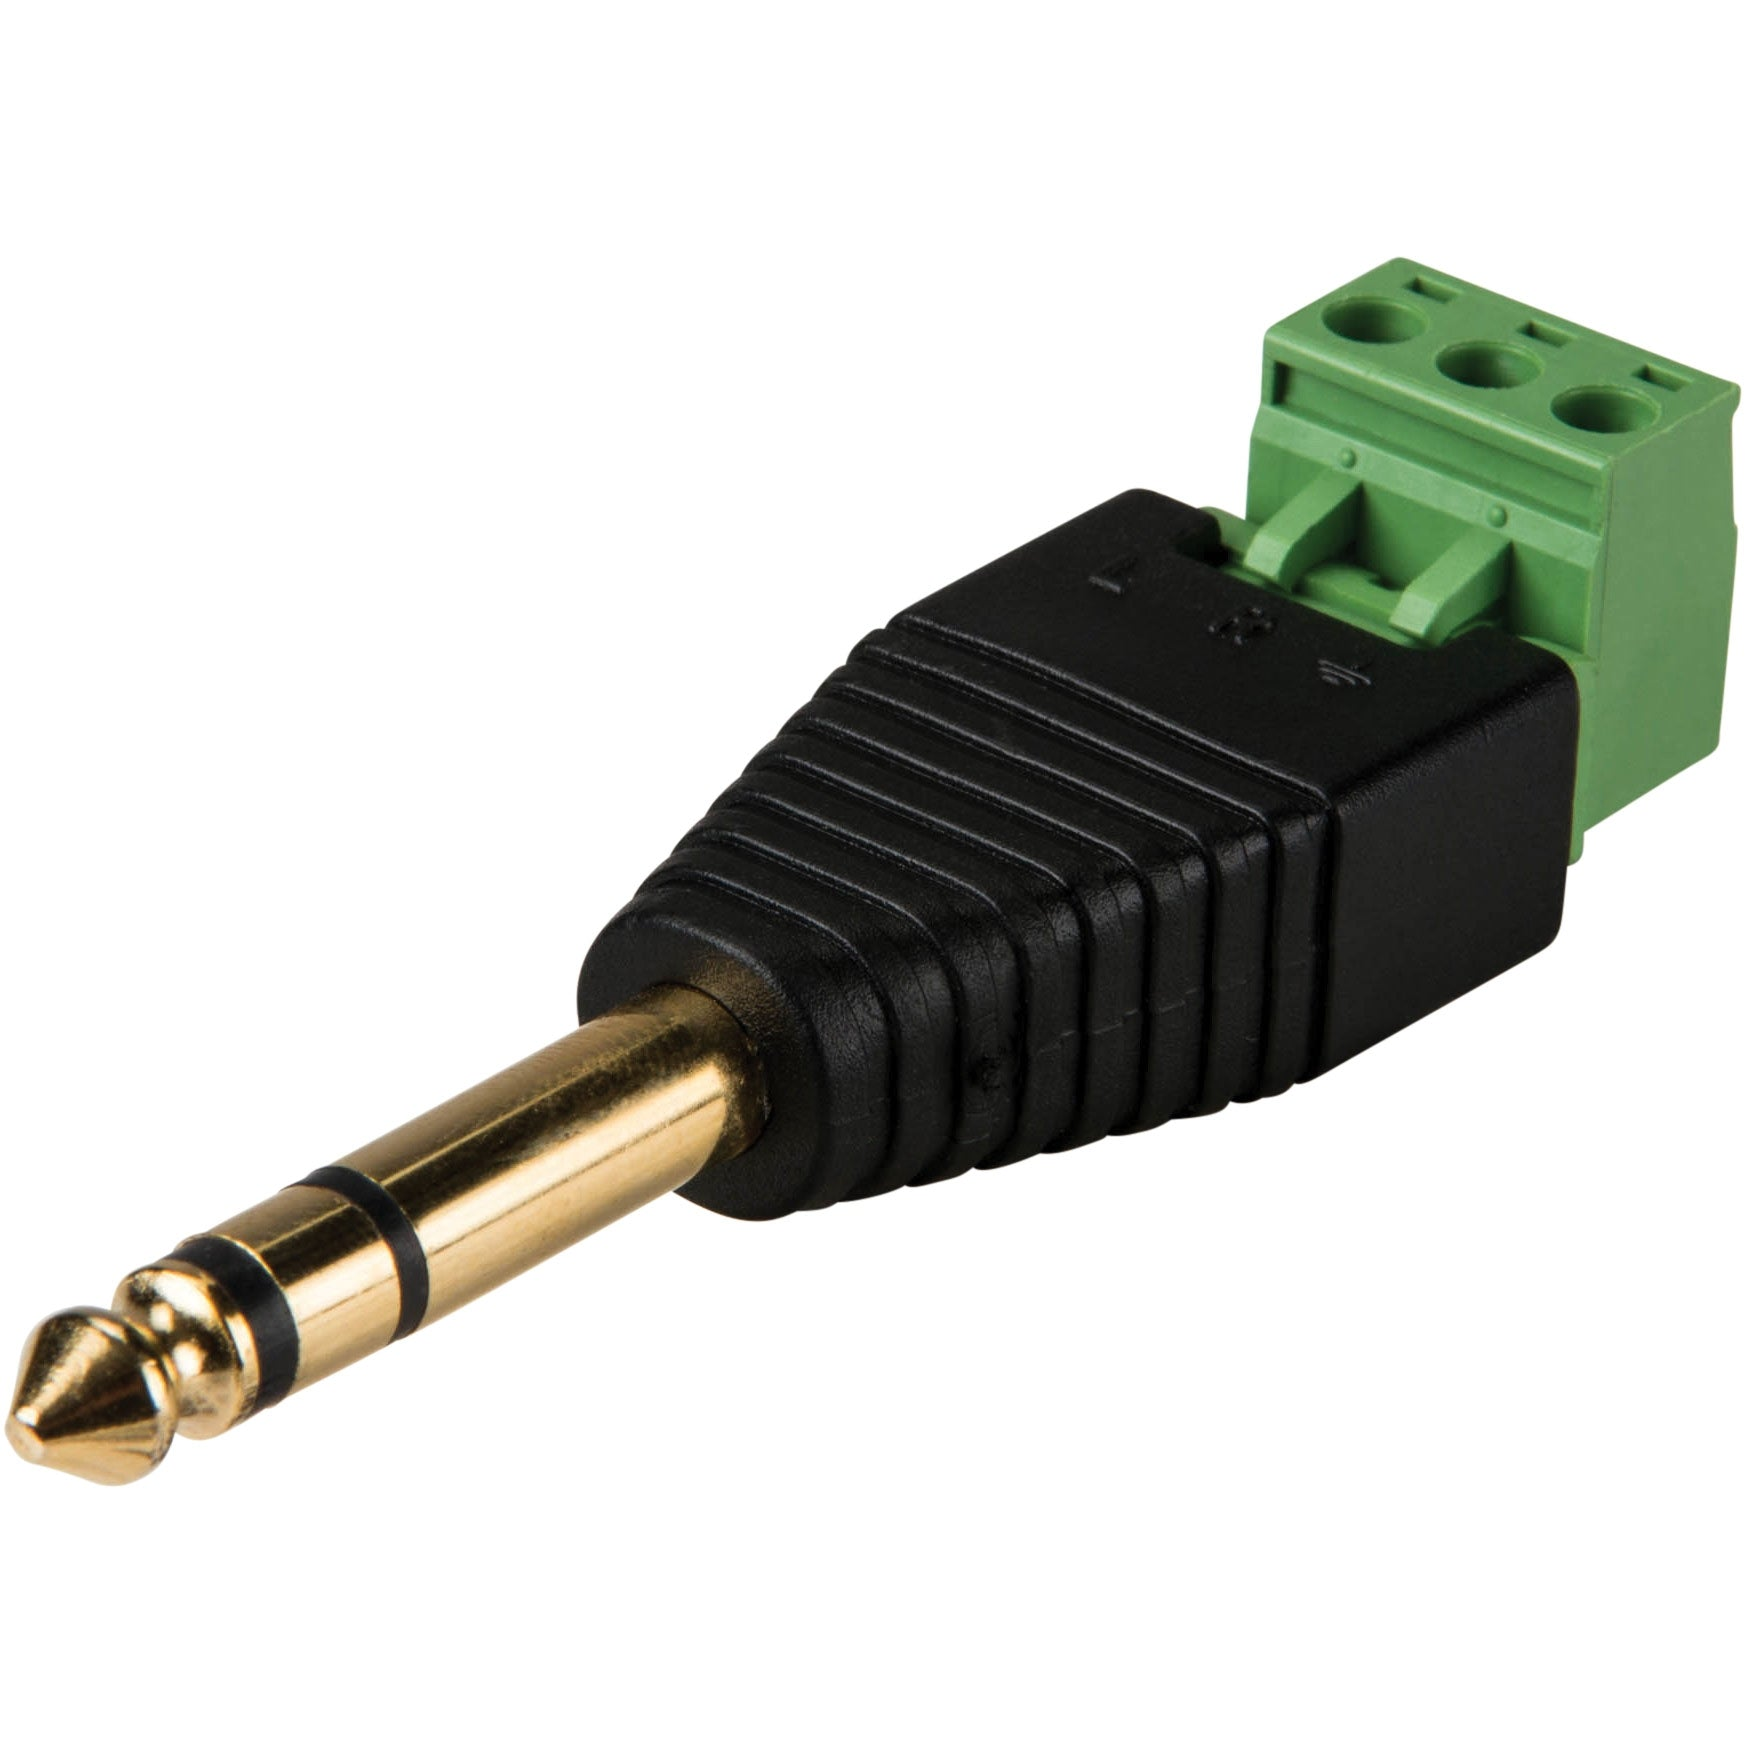 "15-1886 1/4"" Stereo Male Screw Terminal Connector"